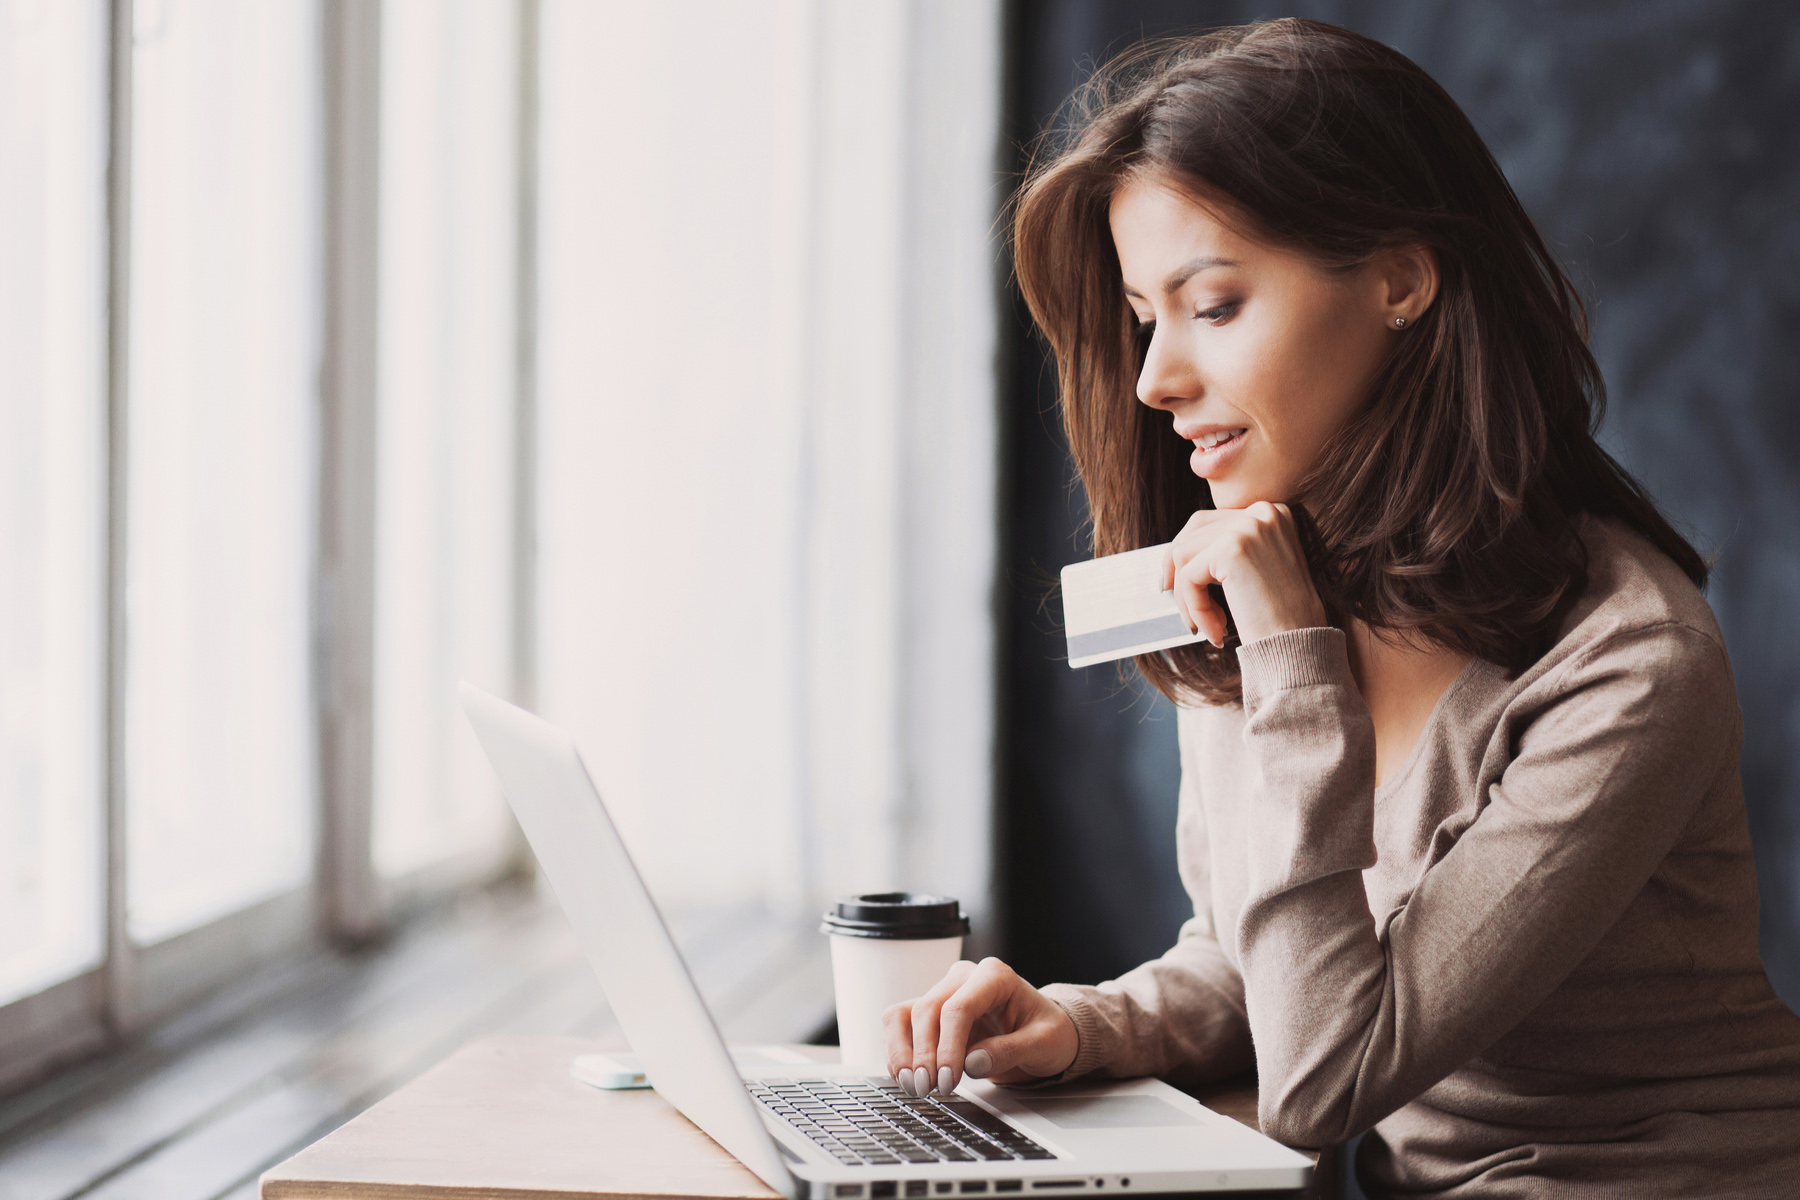 Online banking in Portugal